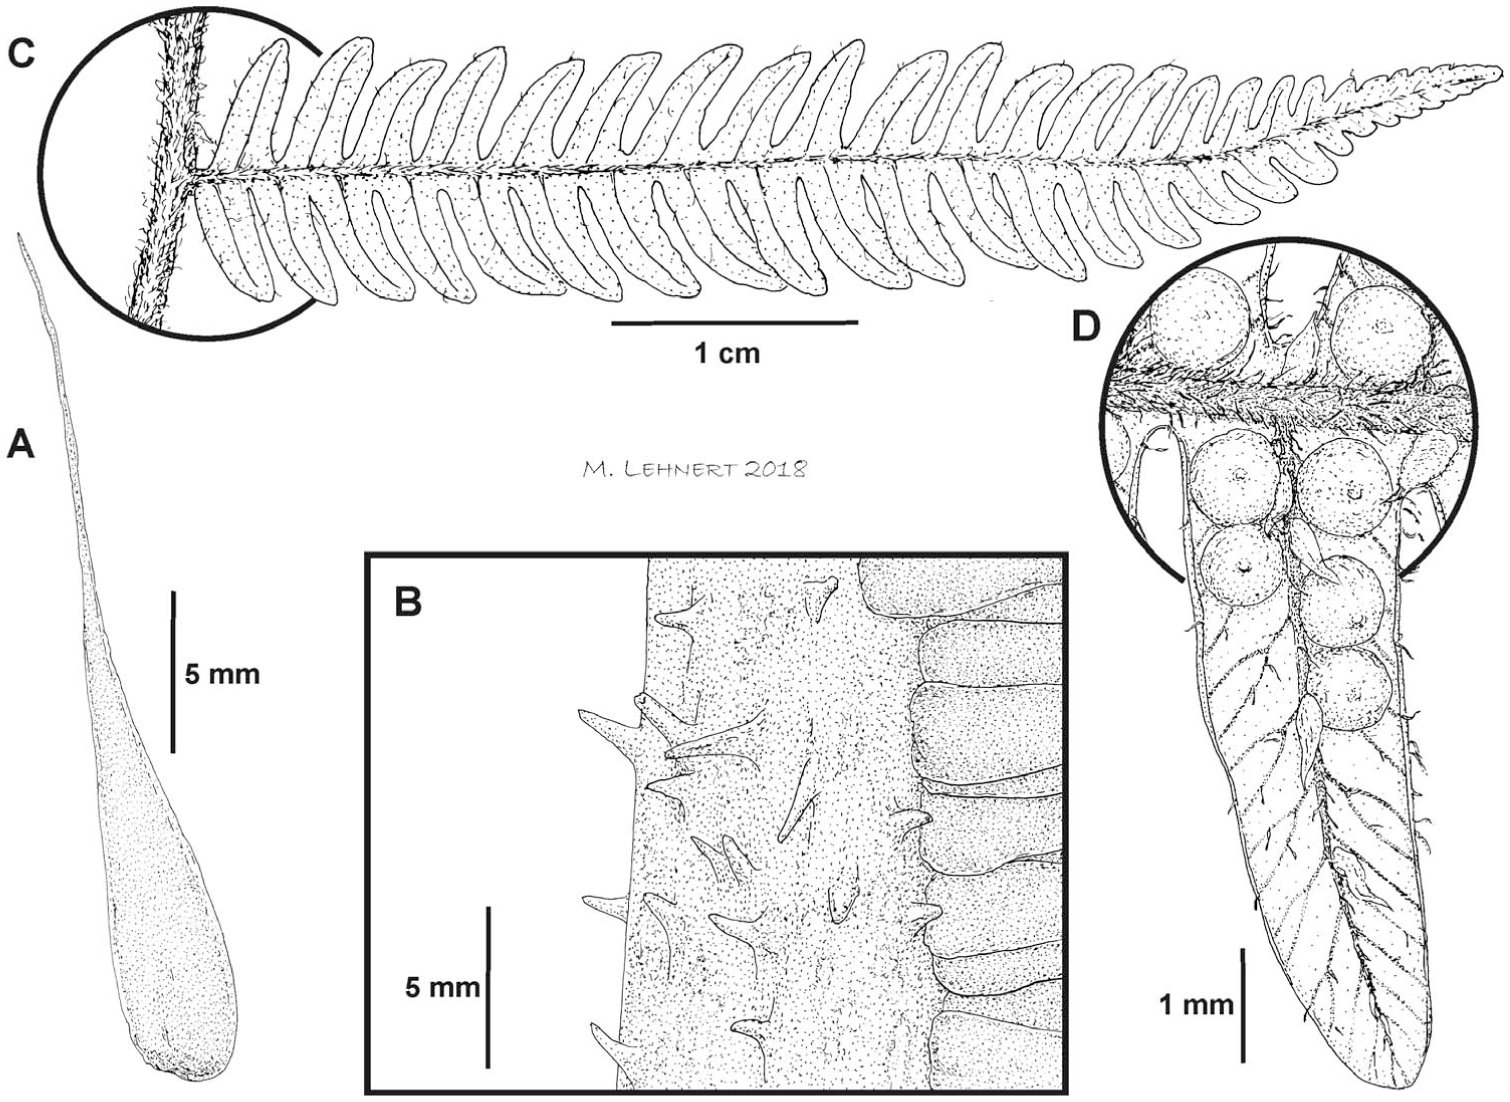 New Additions of Scaly Tree Ferns (Cyatheaceae) to the Flora of Colombia